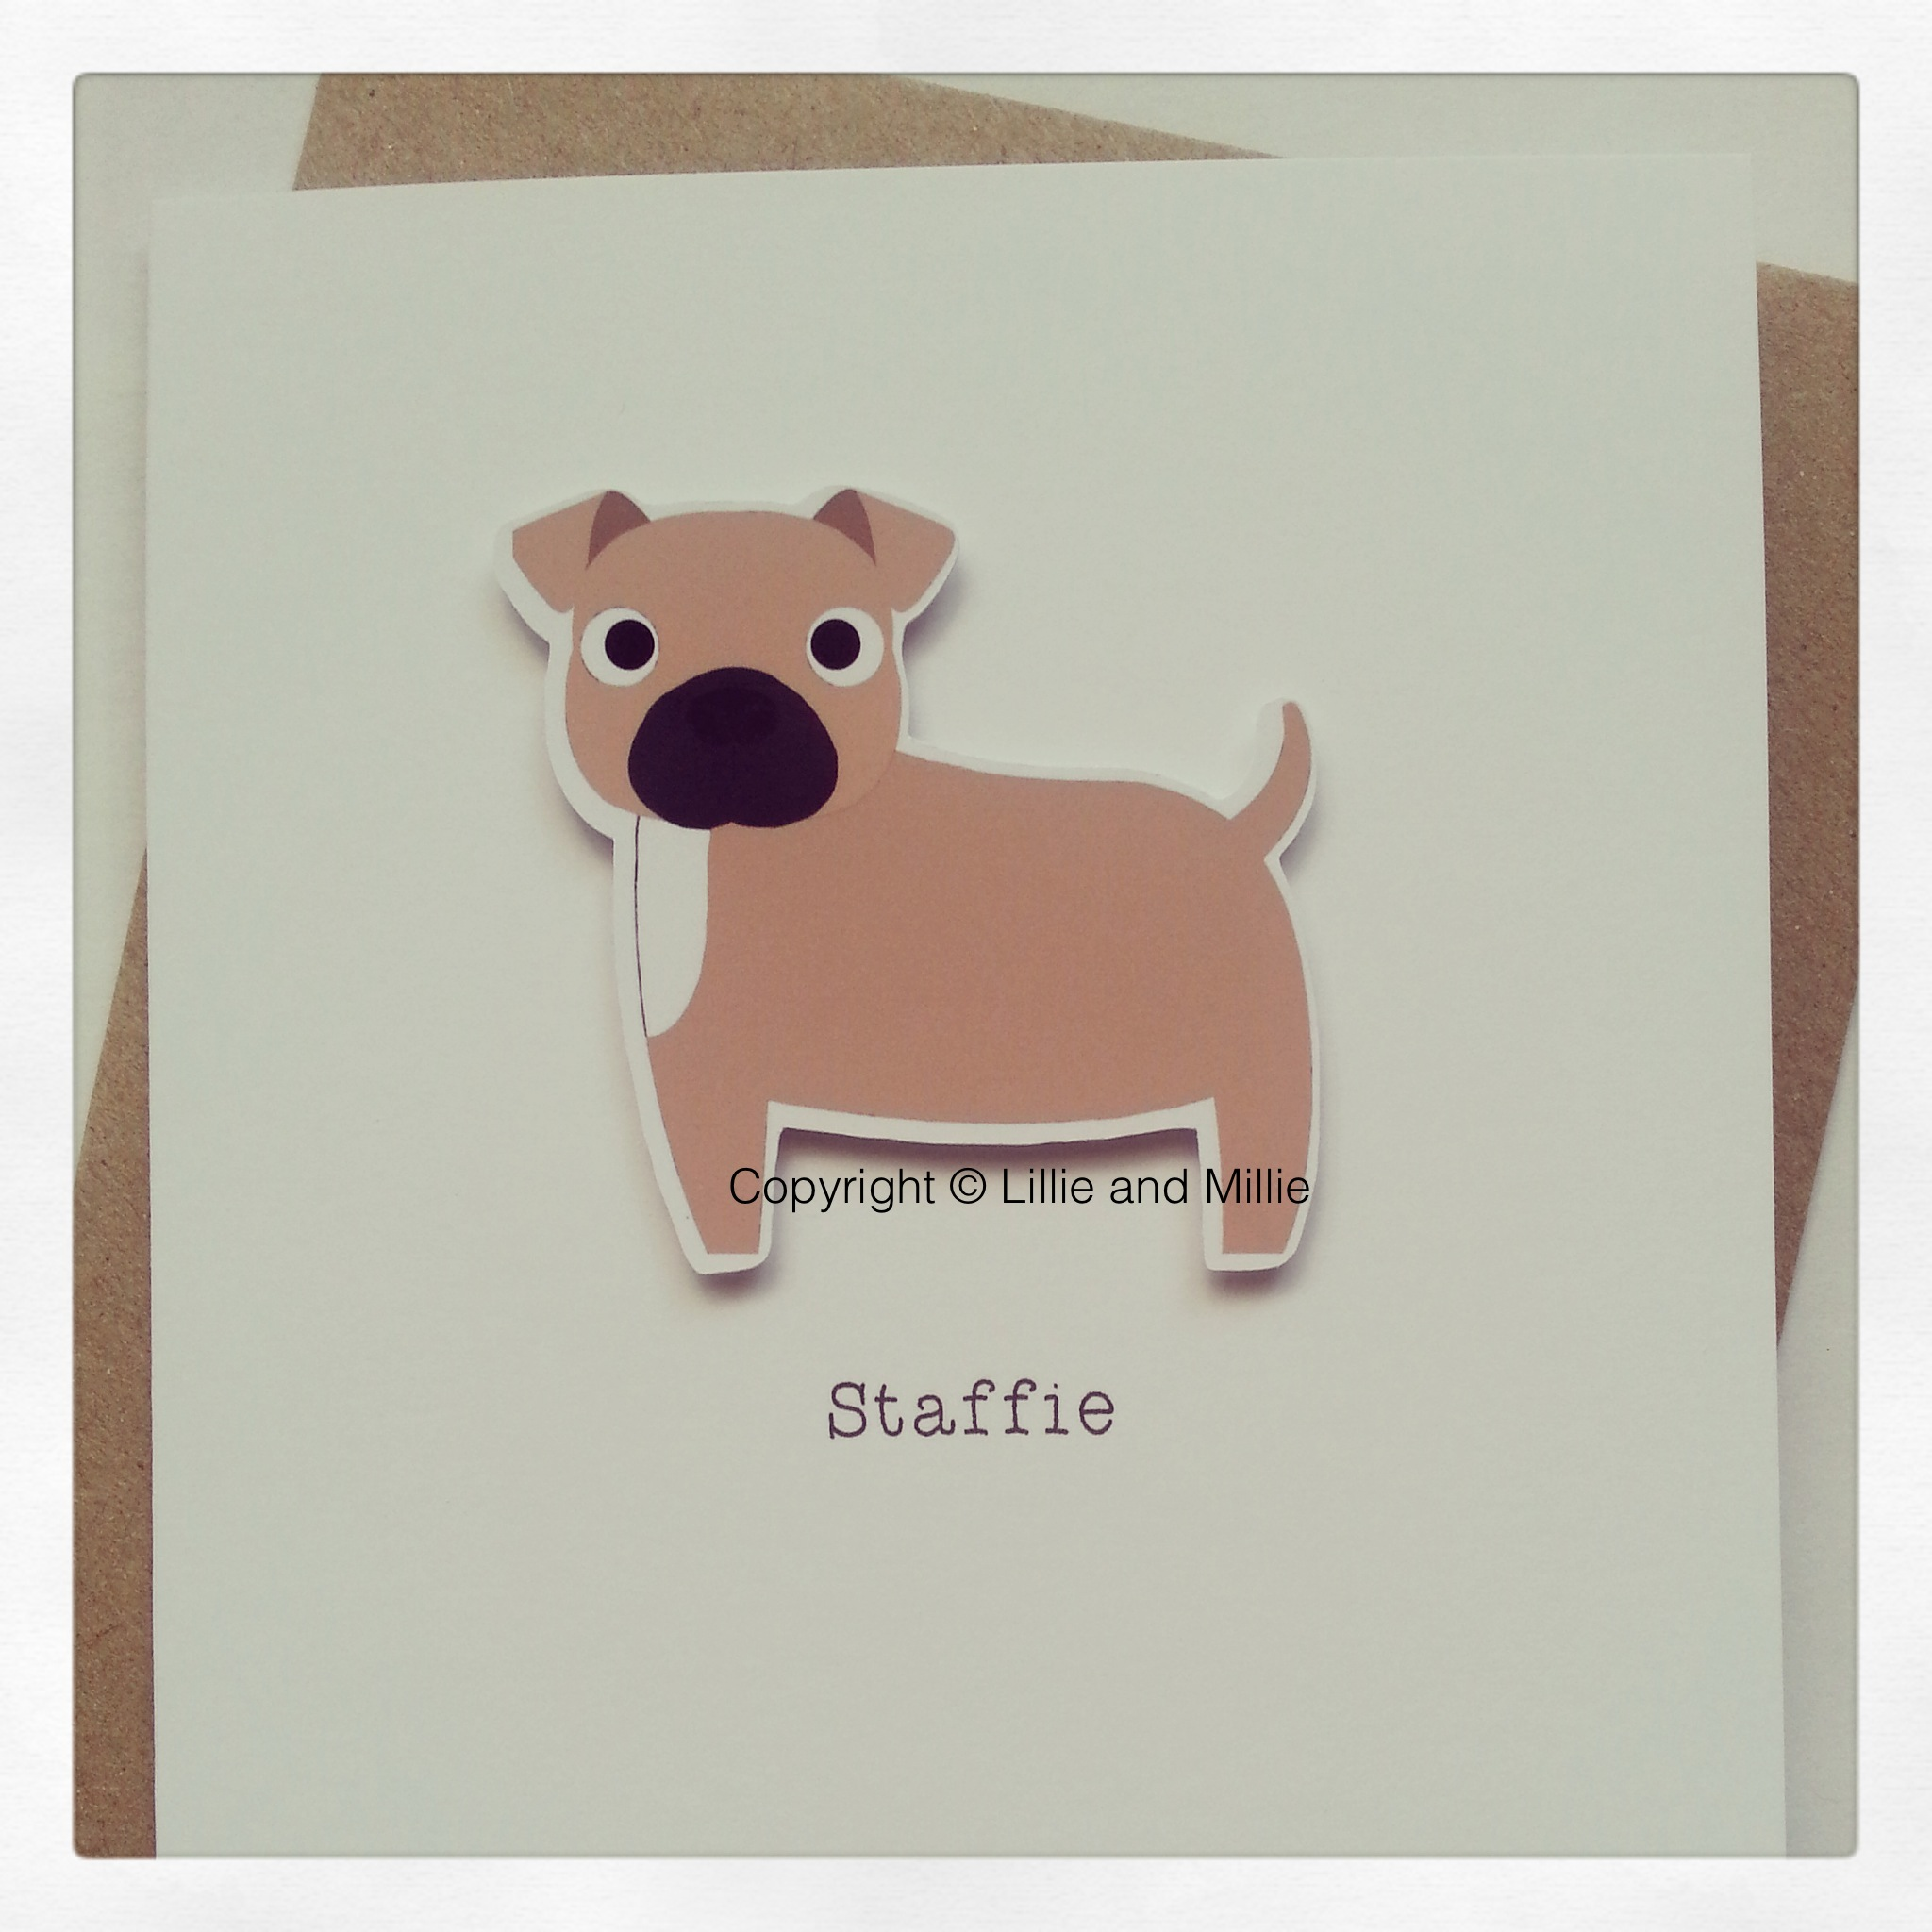 Cute and Cuddly Fawn and White Staffie Card